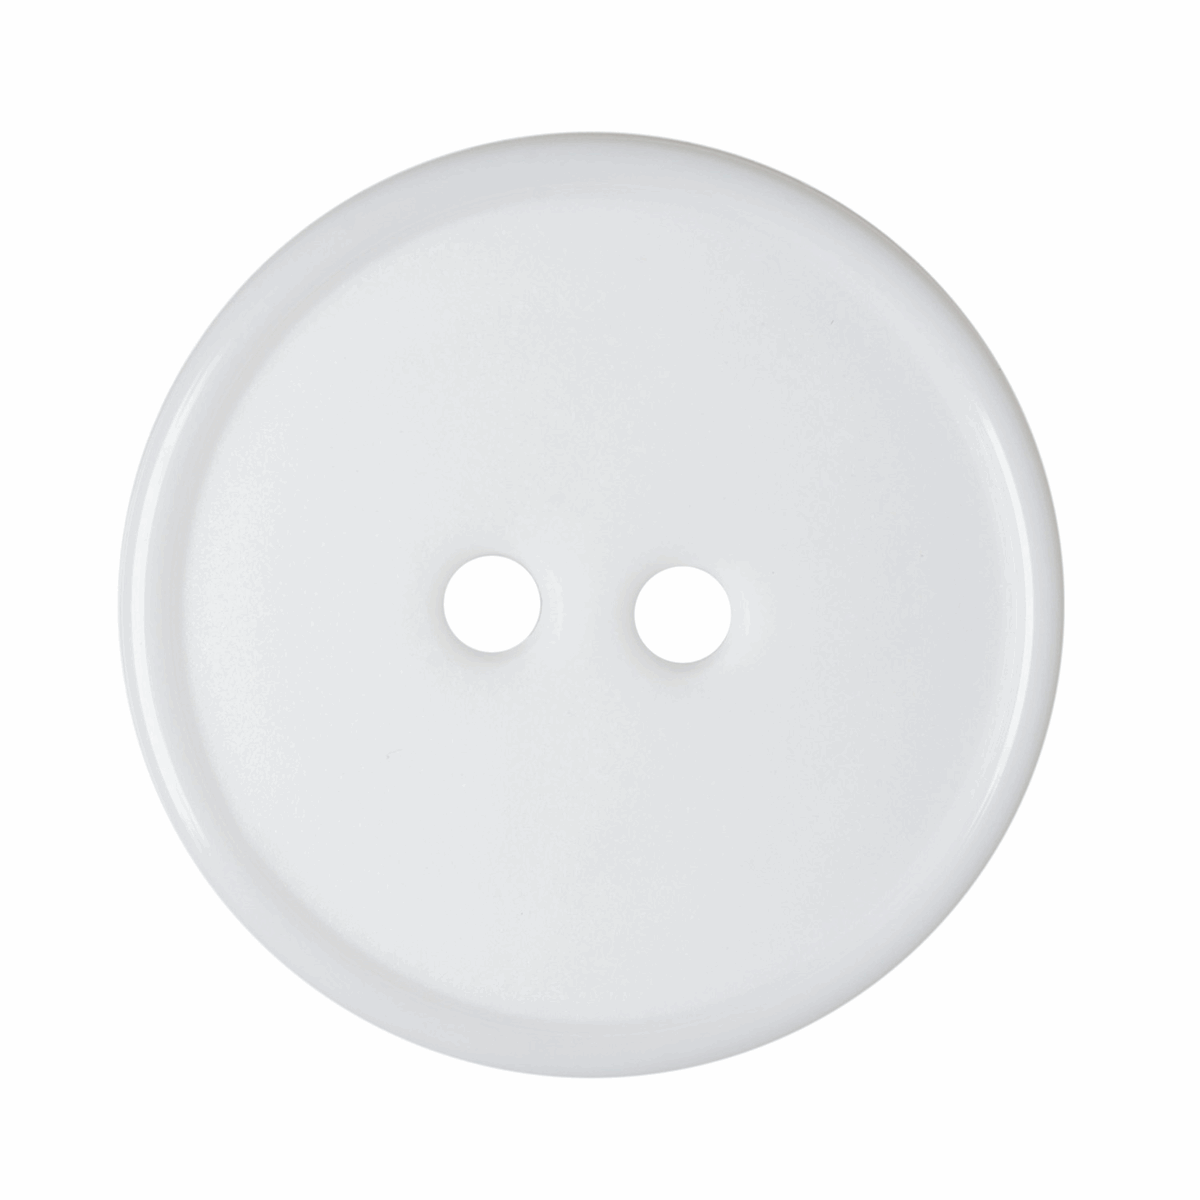 Picture of Flat Top Narrow Rim Button: 2-Hole: 32 lignes/20mm: White